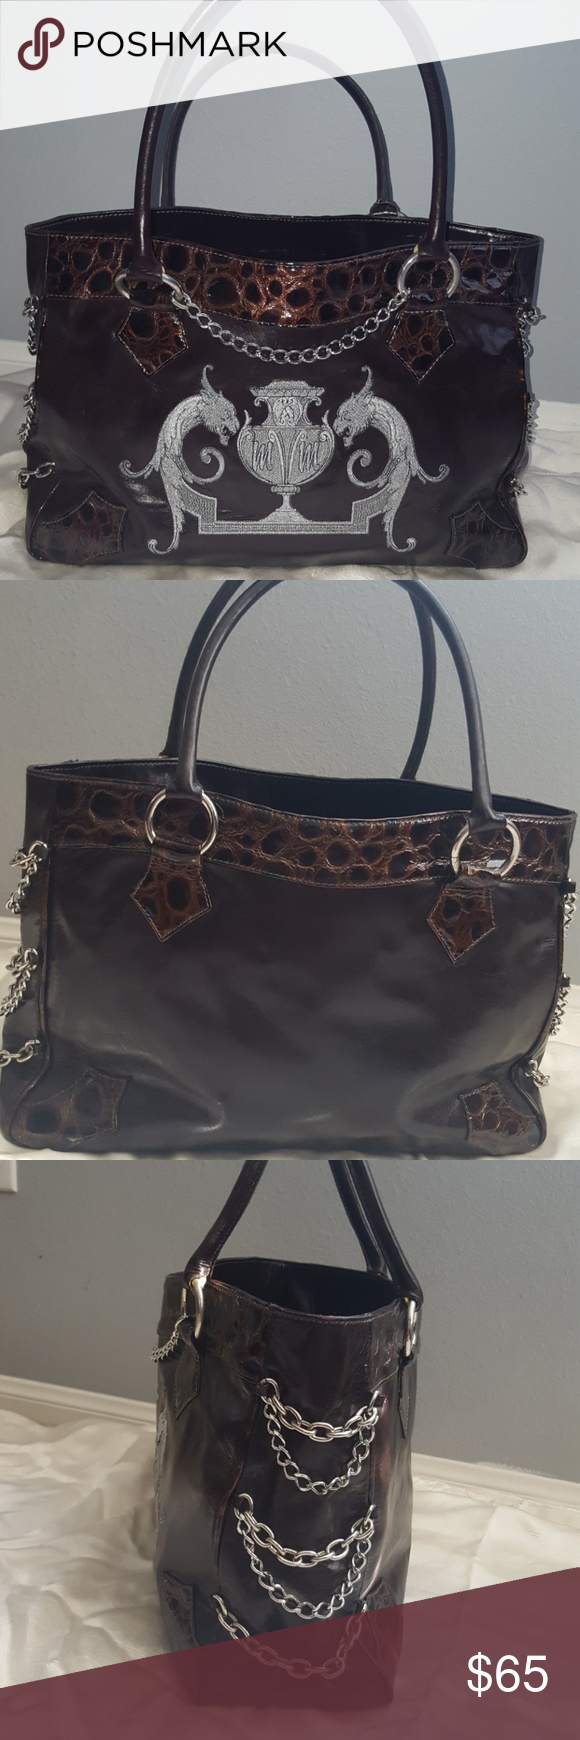 Michelle Monroe Croco Leather Chain Handbag Purse Brown Large In Great Used Condition